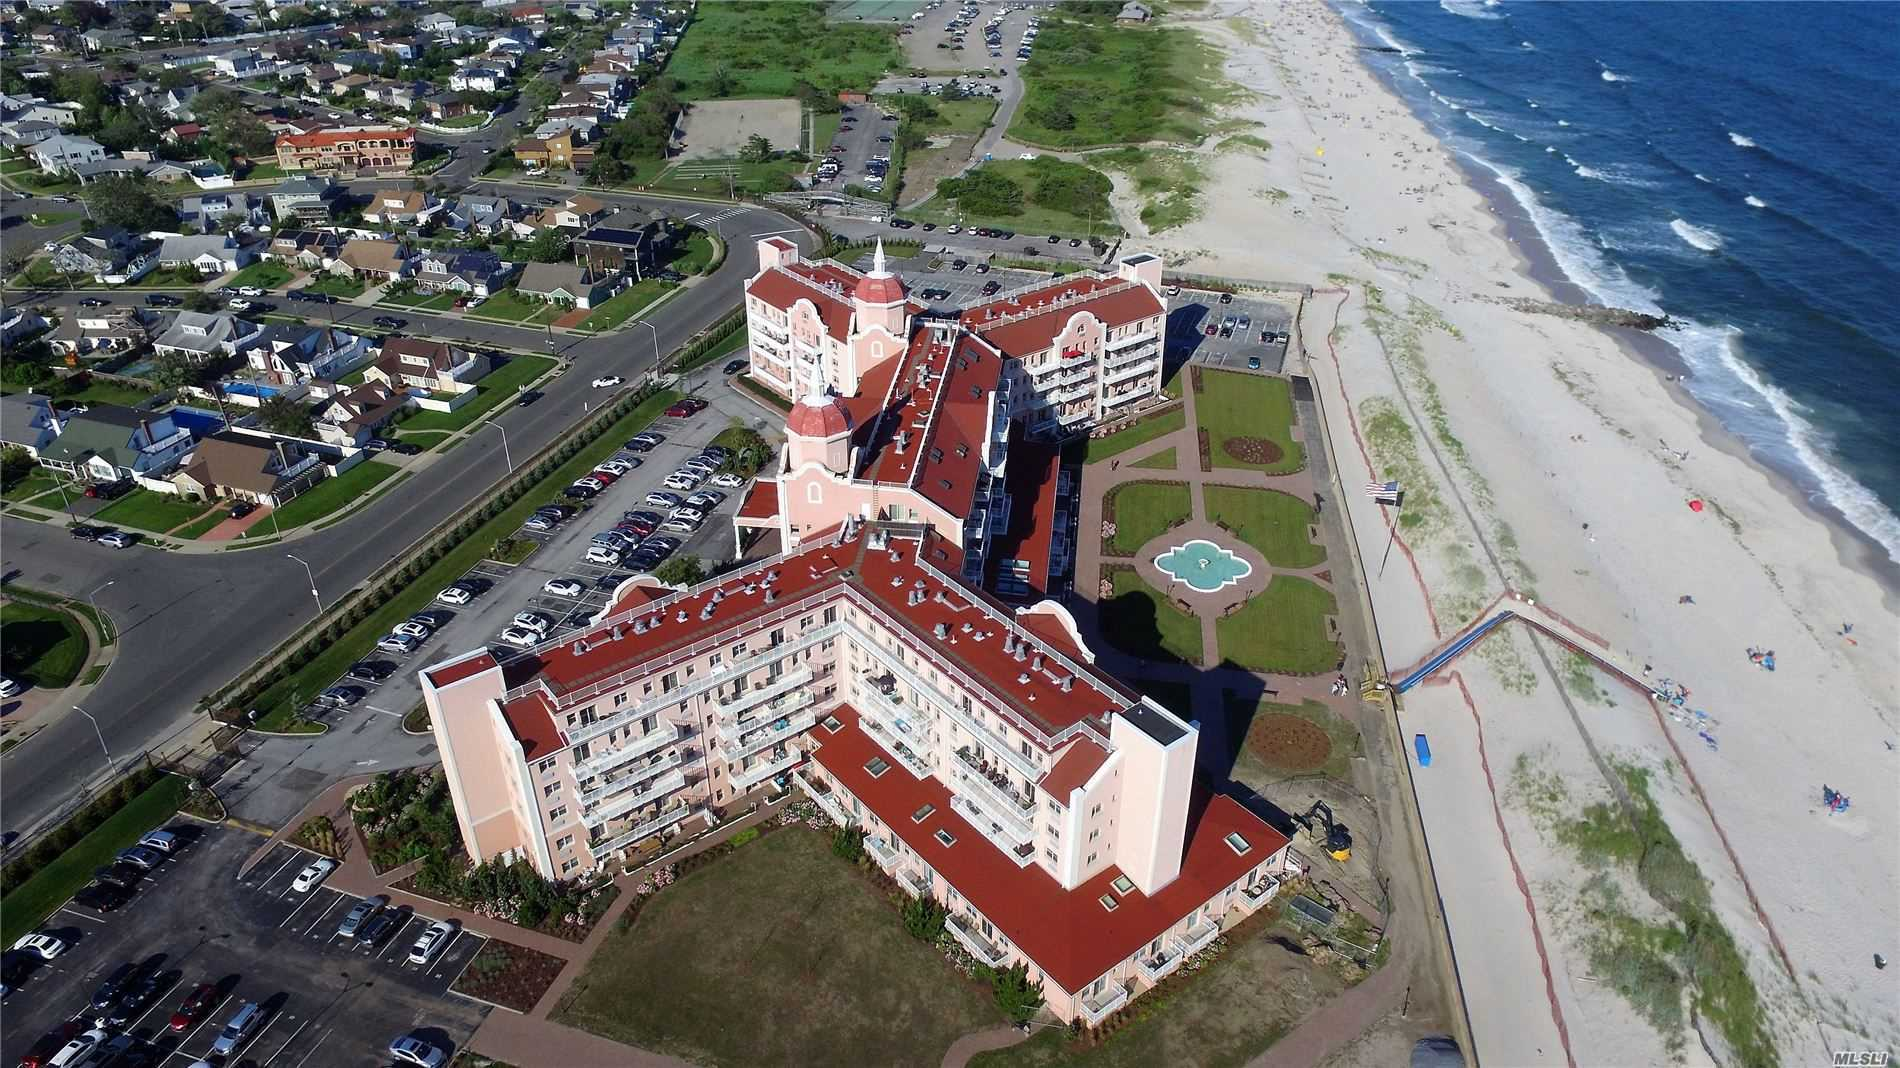 Property for sale at 2 Richmond Road # 3T, Lido Beach NY 11561, Lido Beach,  New York 11561